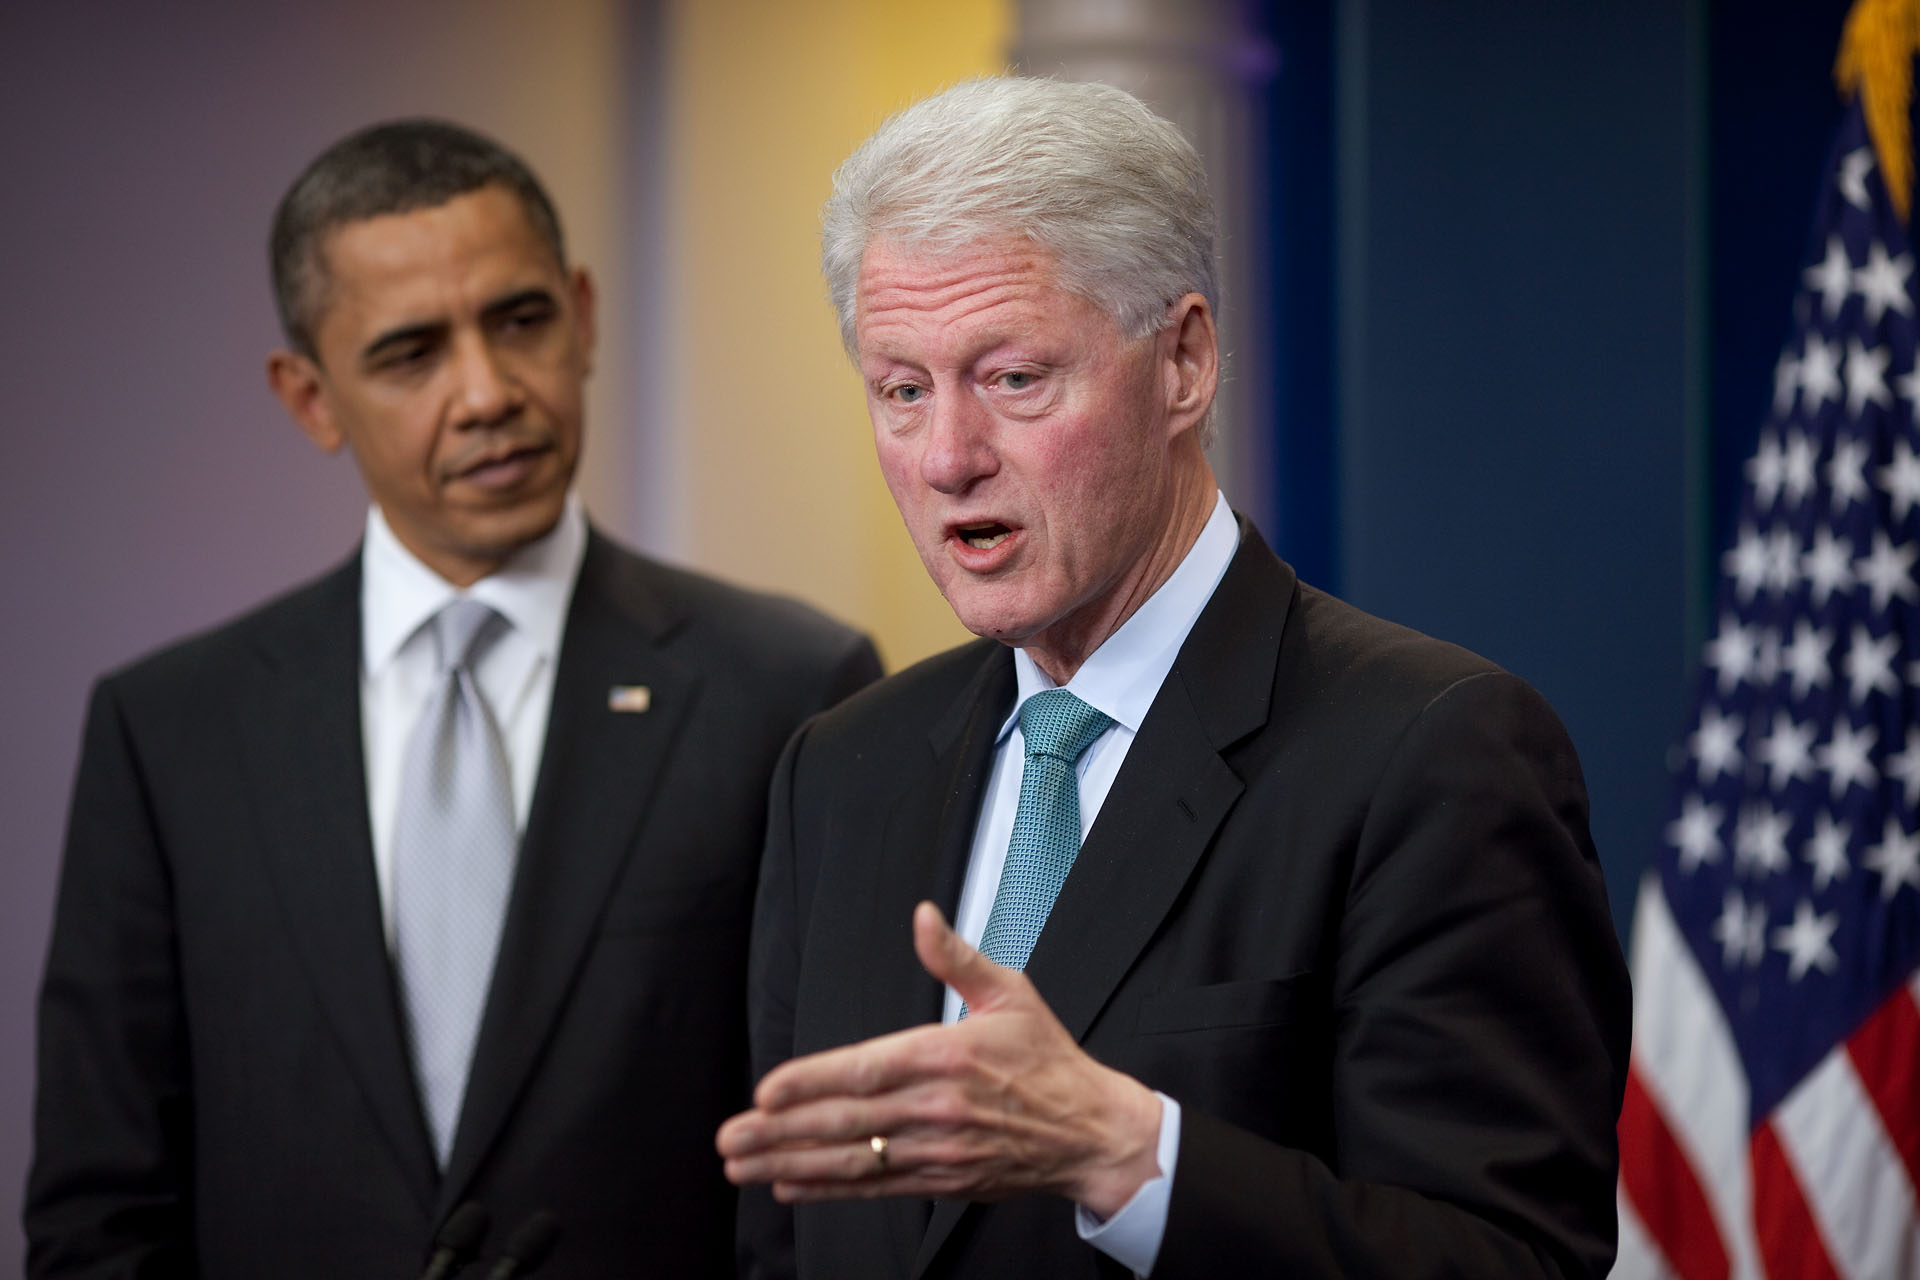 President Obama & President Clinton Discuss Tax Cuts, Unemployment Insurance & Jobs